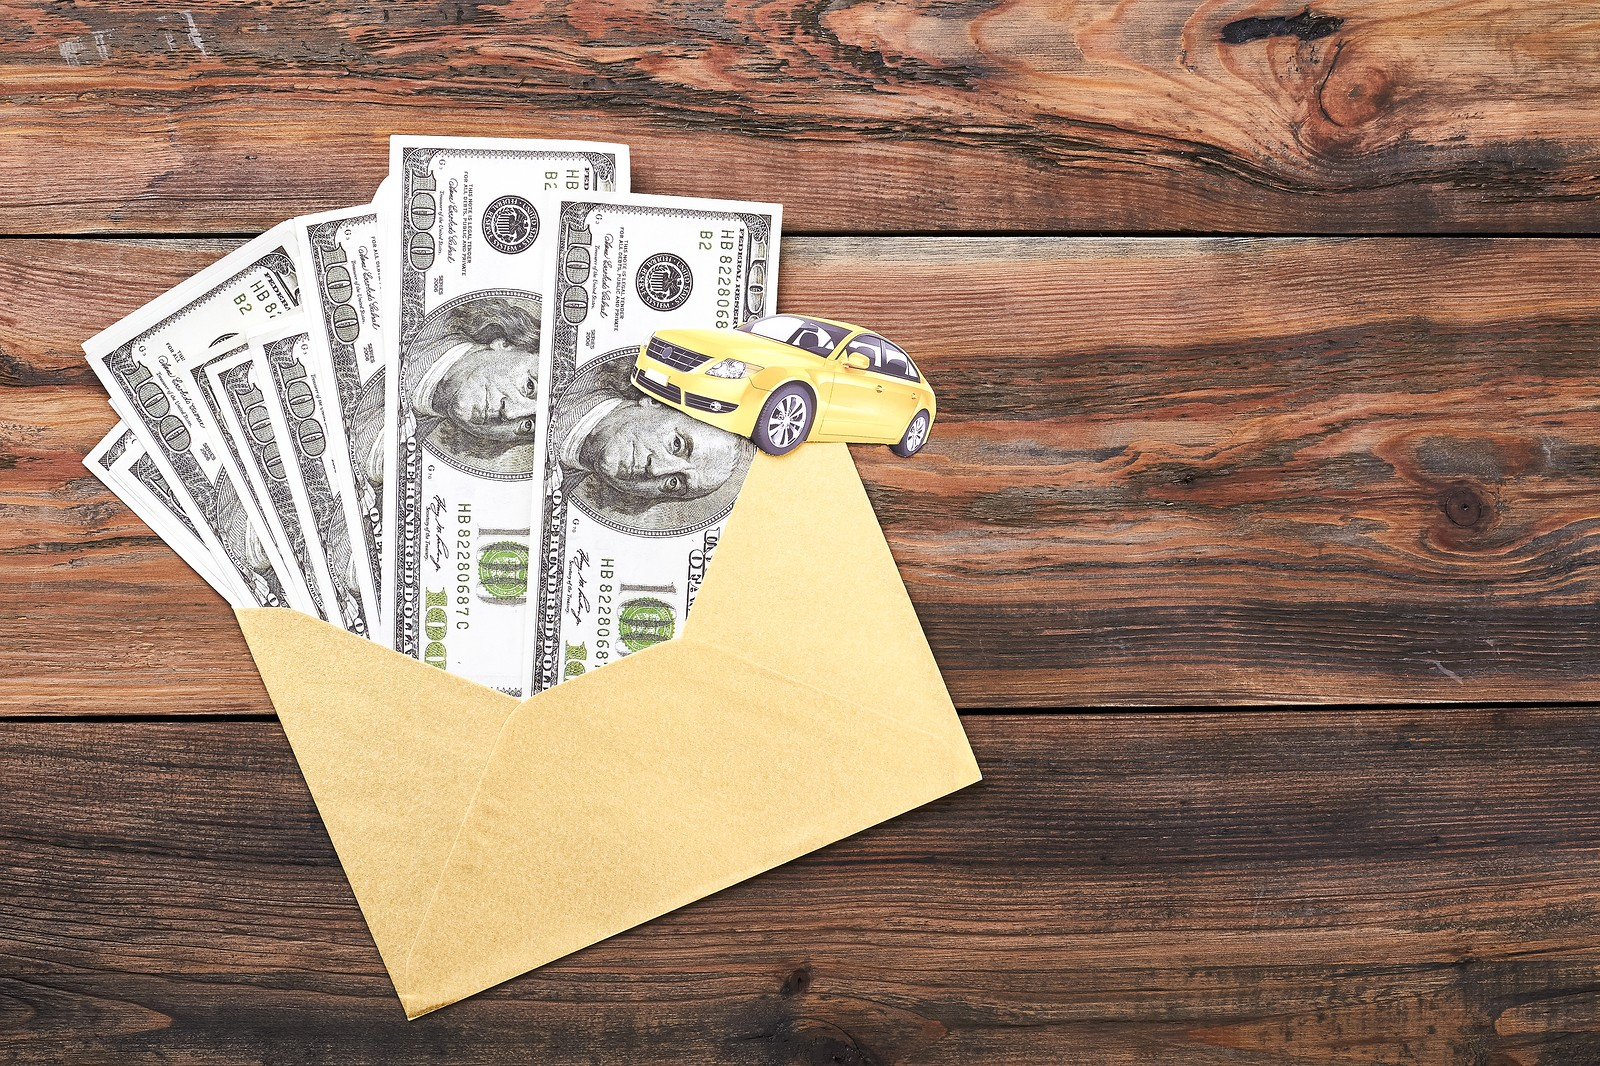 Cash For Junk Cars McAllen, TX – How To Sell Your Car Or Use Cash Cars Buyer For The Best Deal!